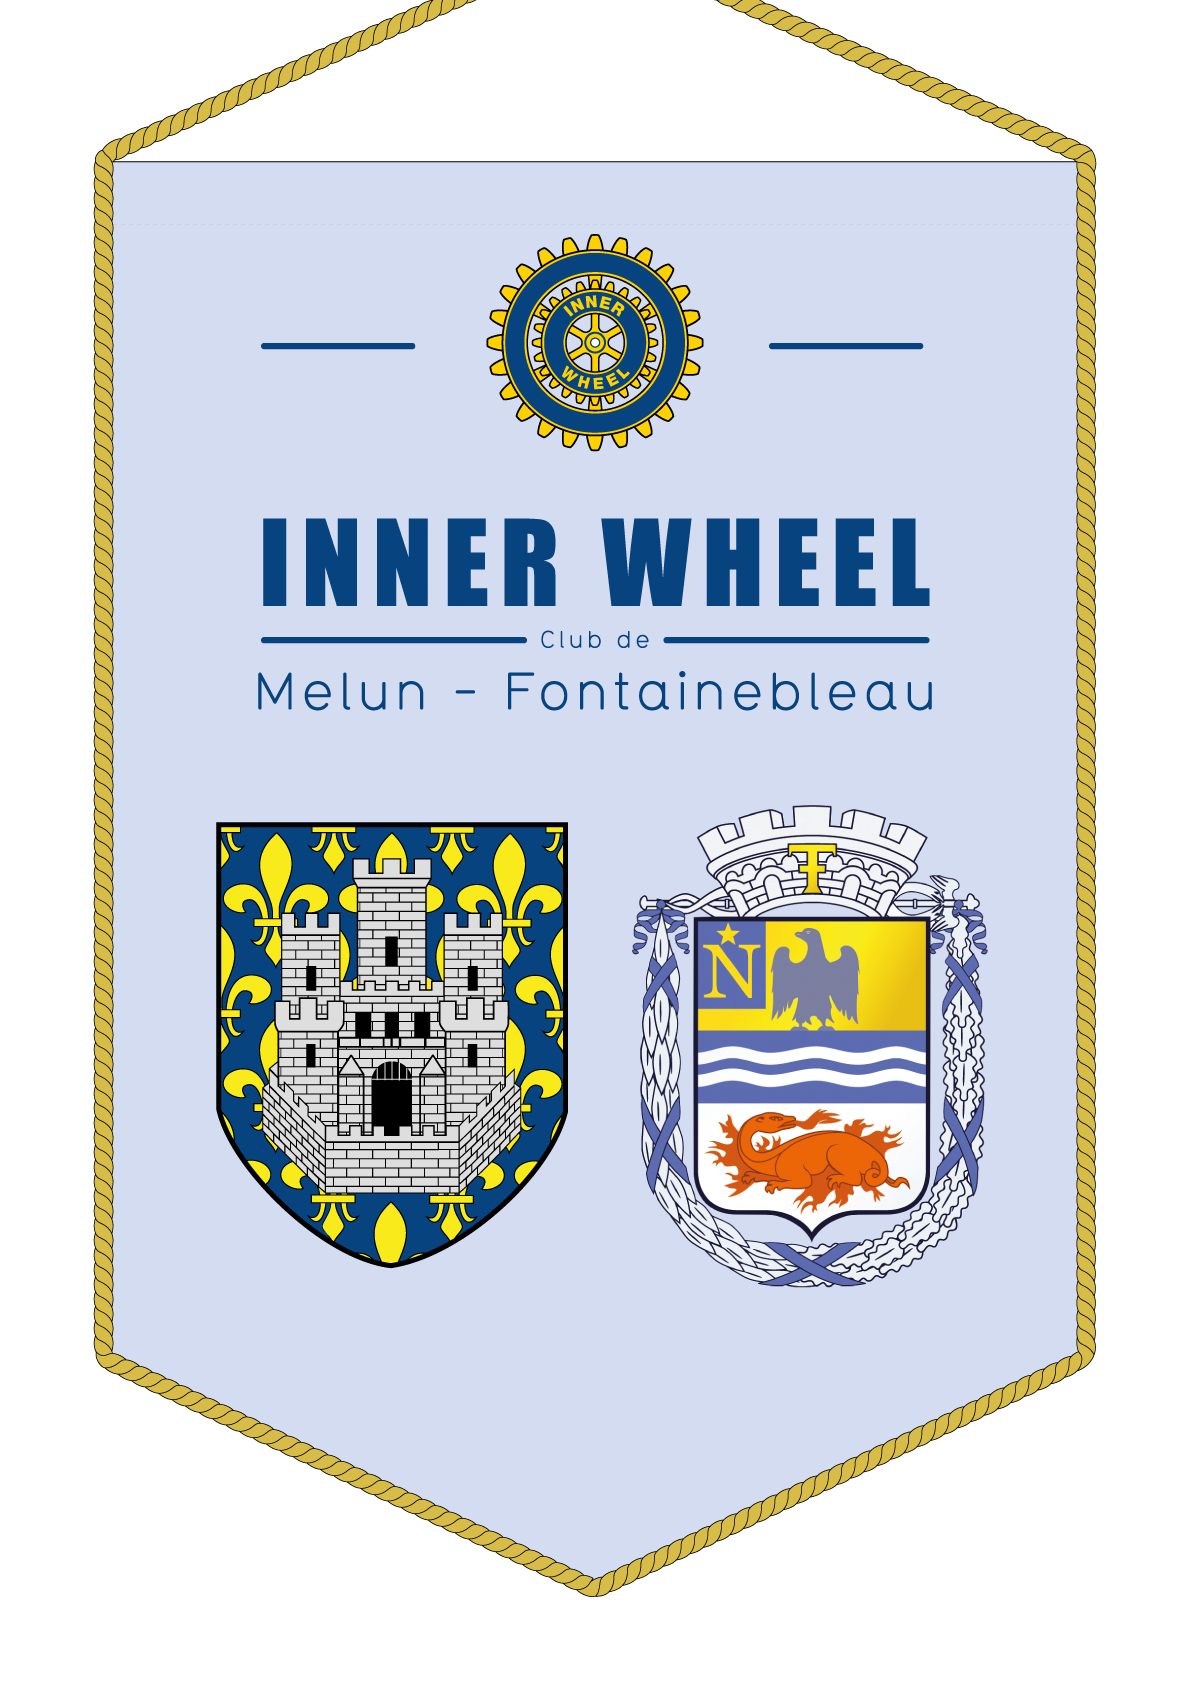 FANION INNER WHEEL CLUB MELUN FONTAINEBLEAU